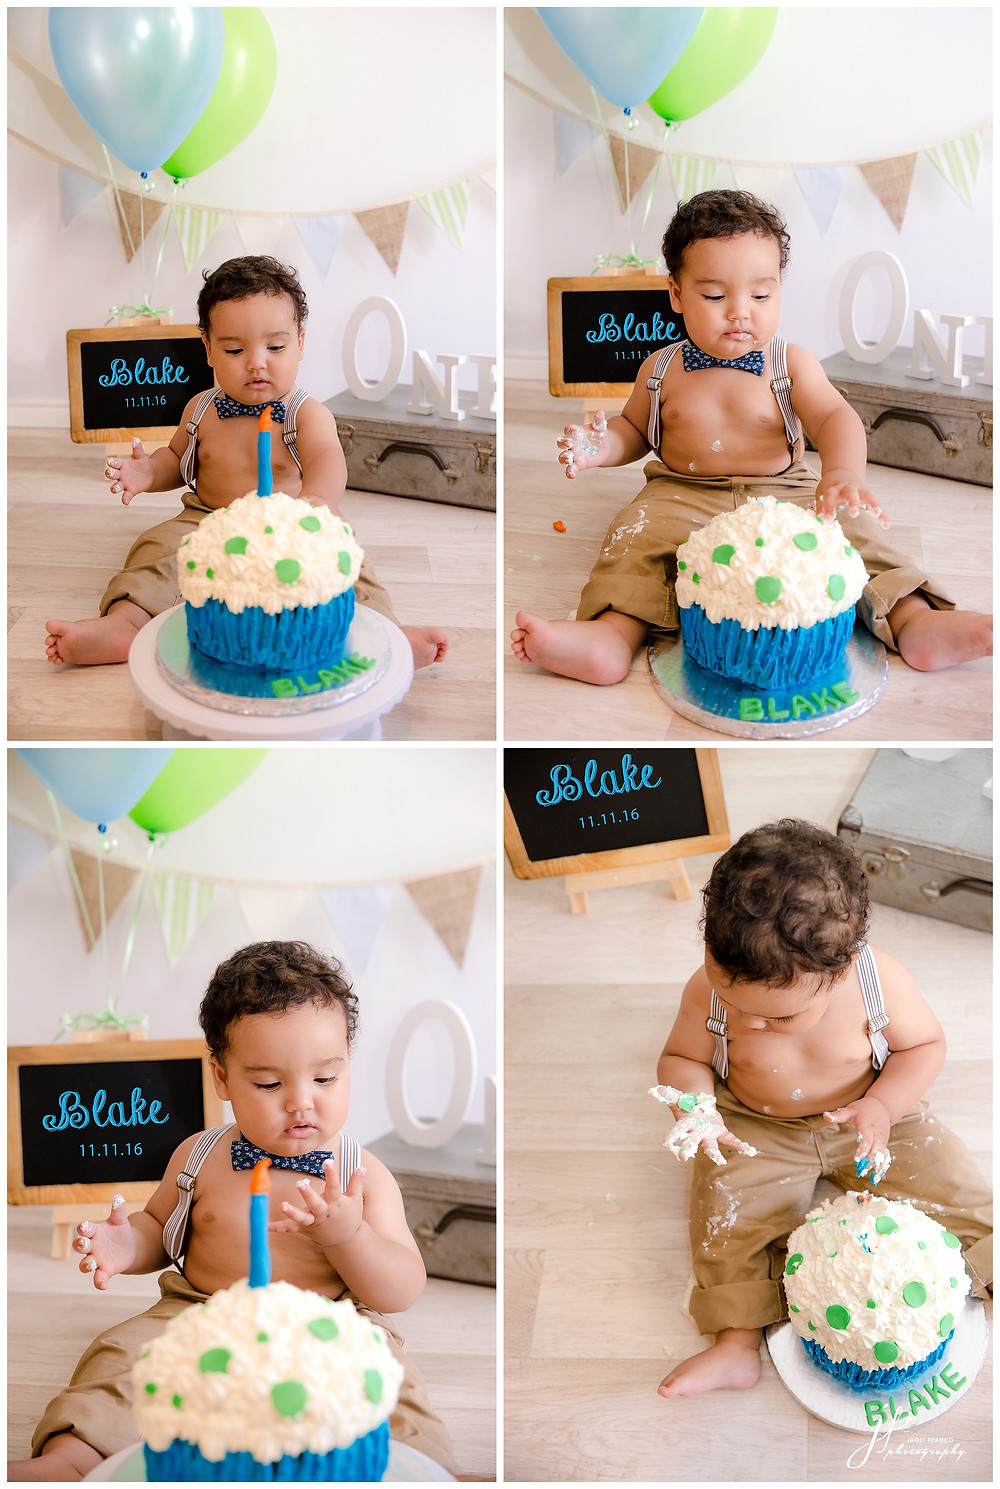 Cake Smash by Jaqui Franco Photography